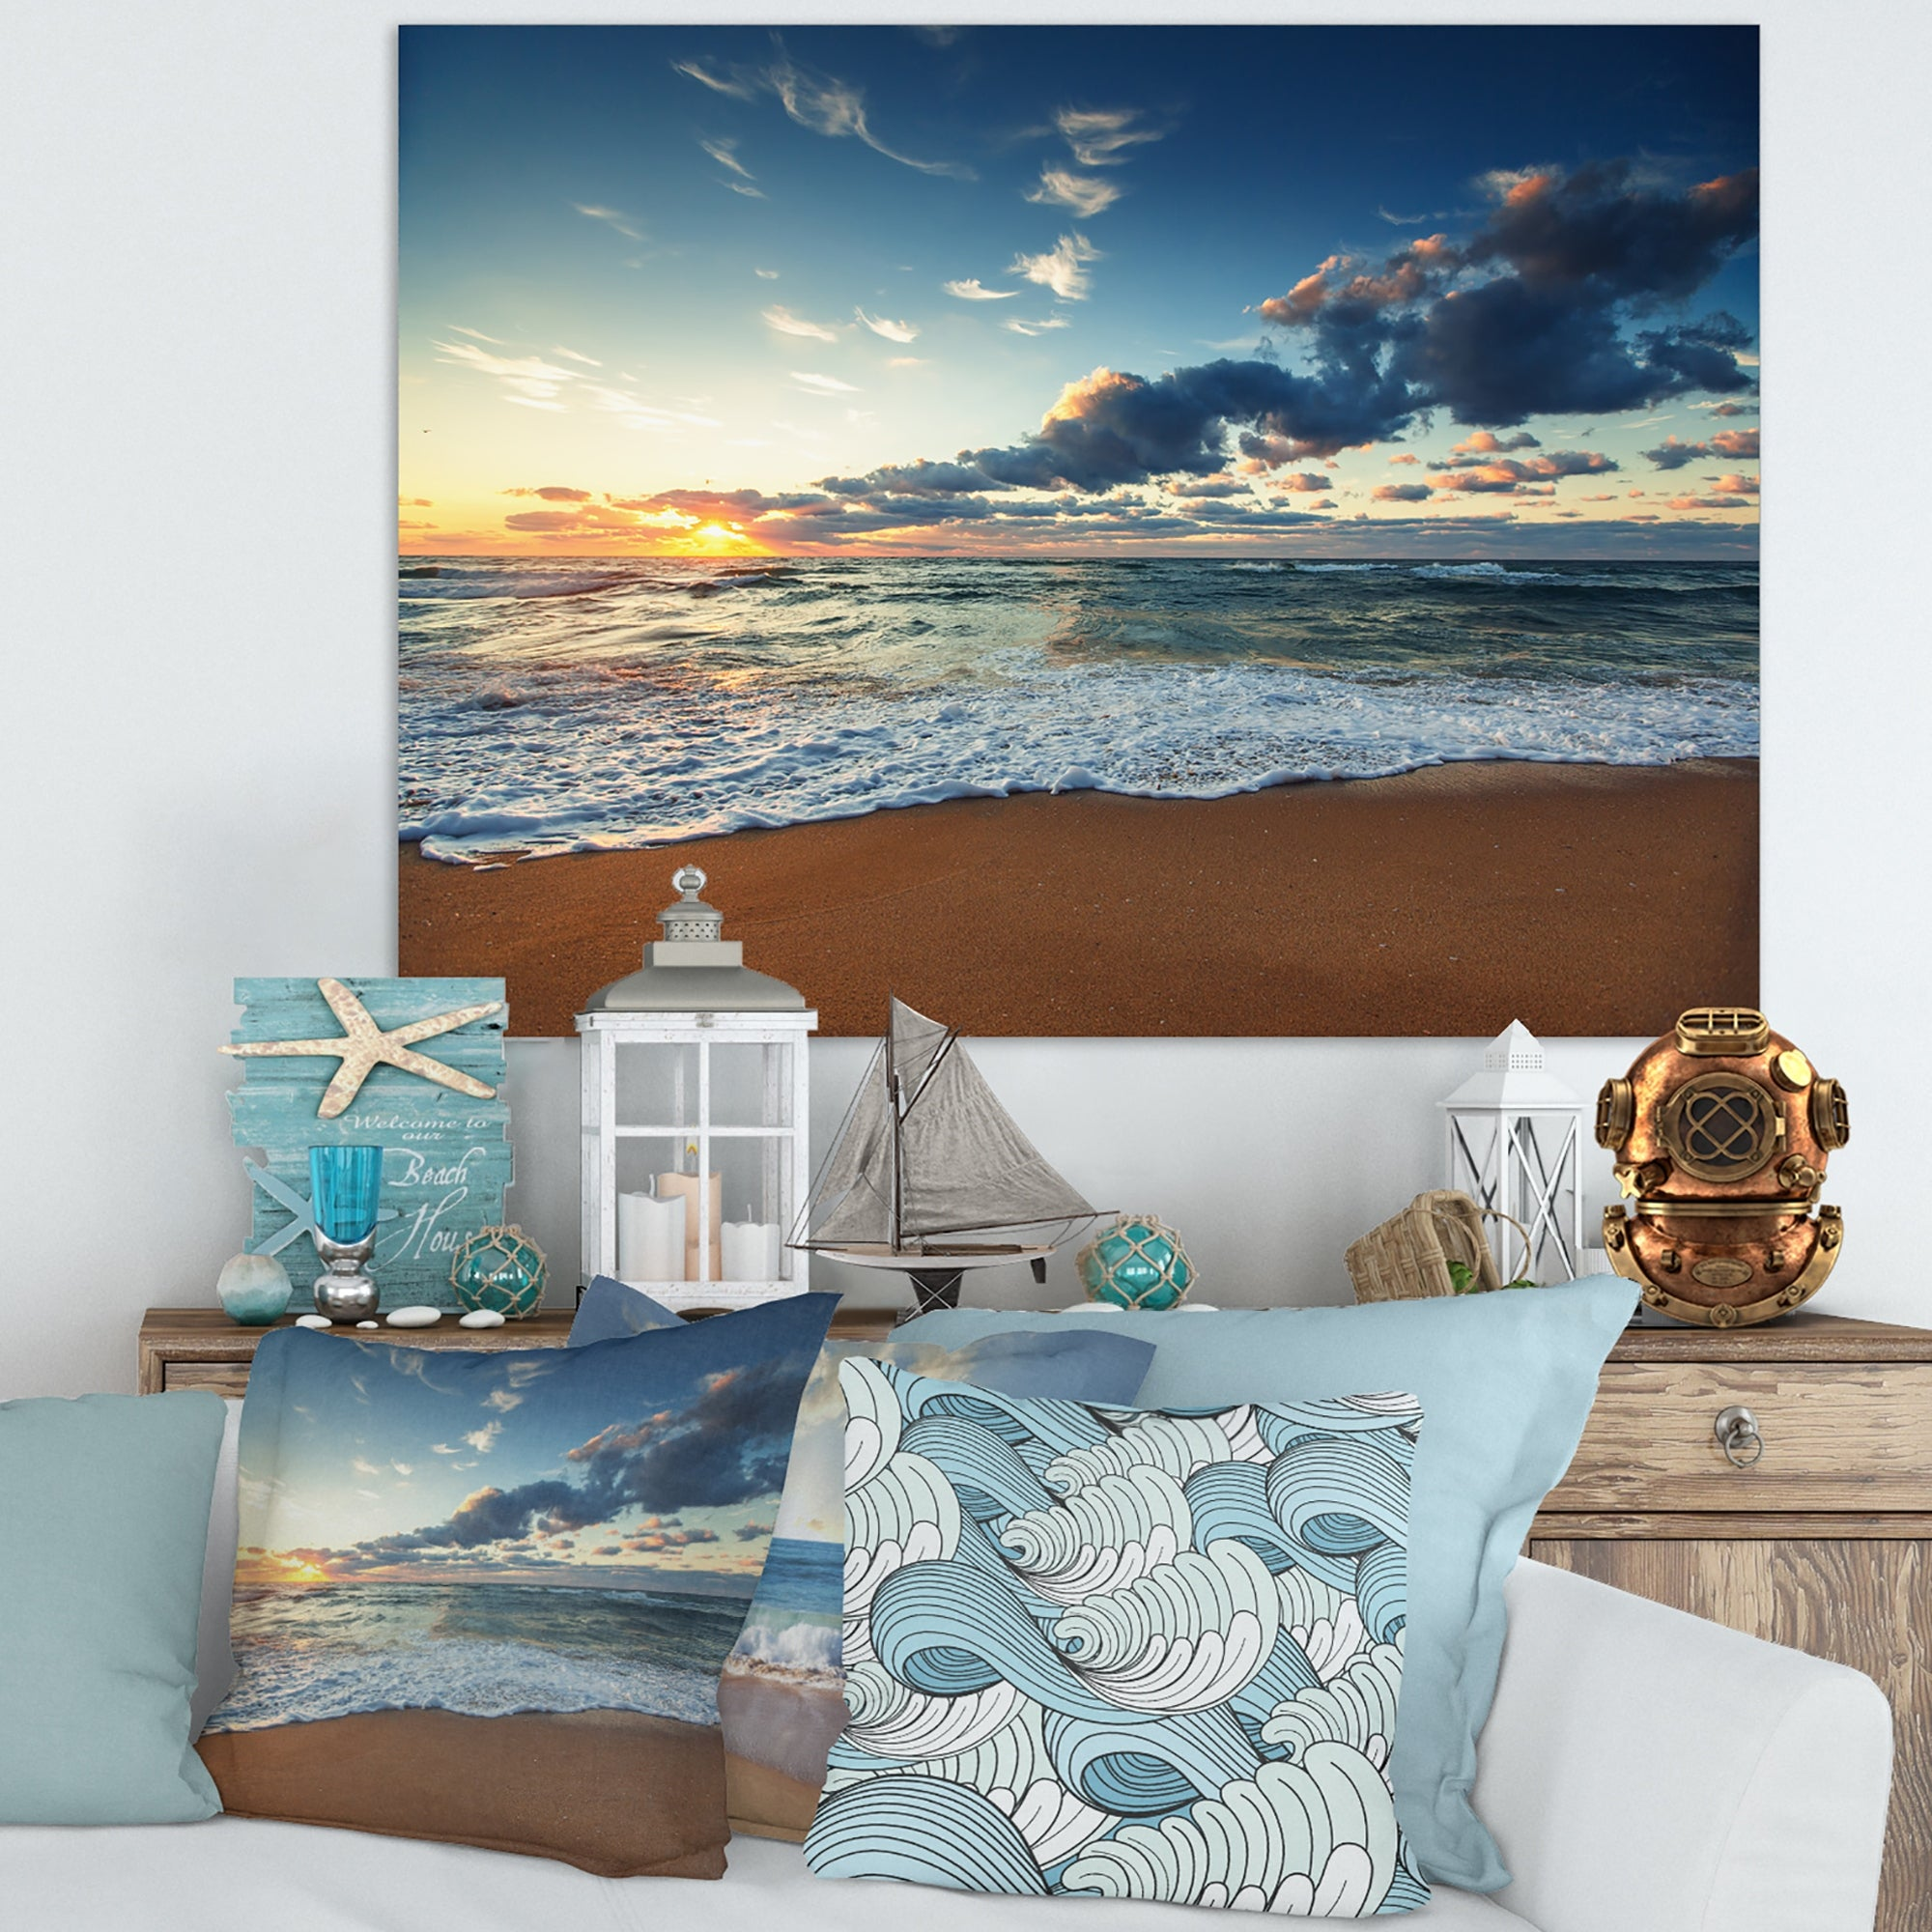 Sunrise-and-Glowing-Waves-in-Ocean-Seashore-Canvas-Wall-Small thumbnail 9